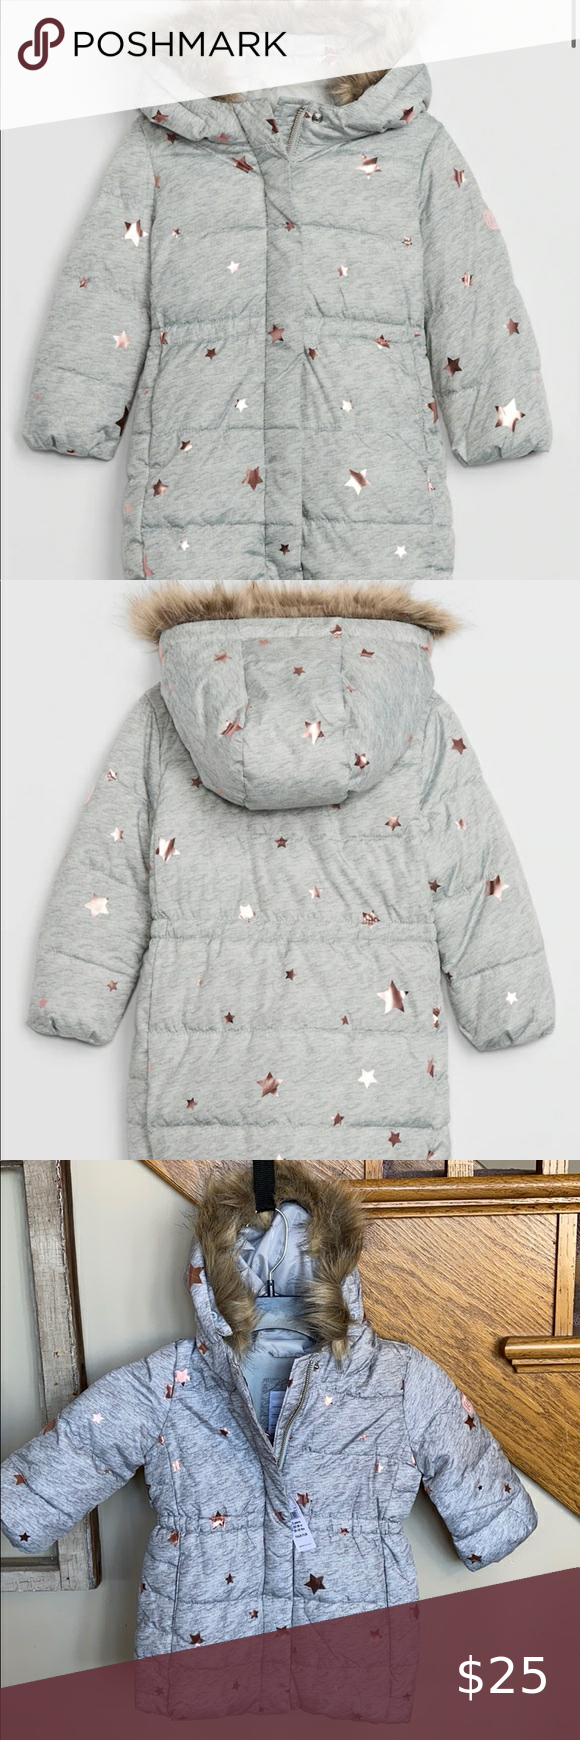 Toddler Coldcontrol Max Puffer Jacket In 2021 Girls Puffer Coat Winter Puffer Coat Grey Puffer Coat [ 1740 x 580 Pixel ]